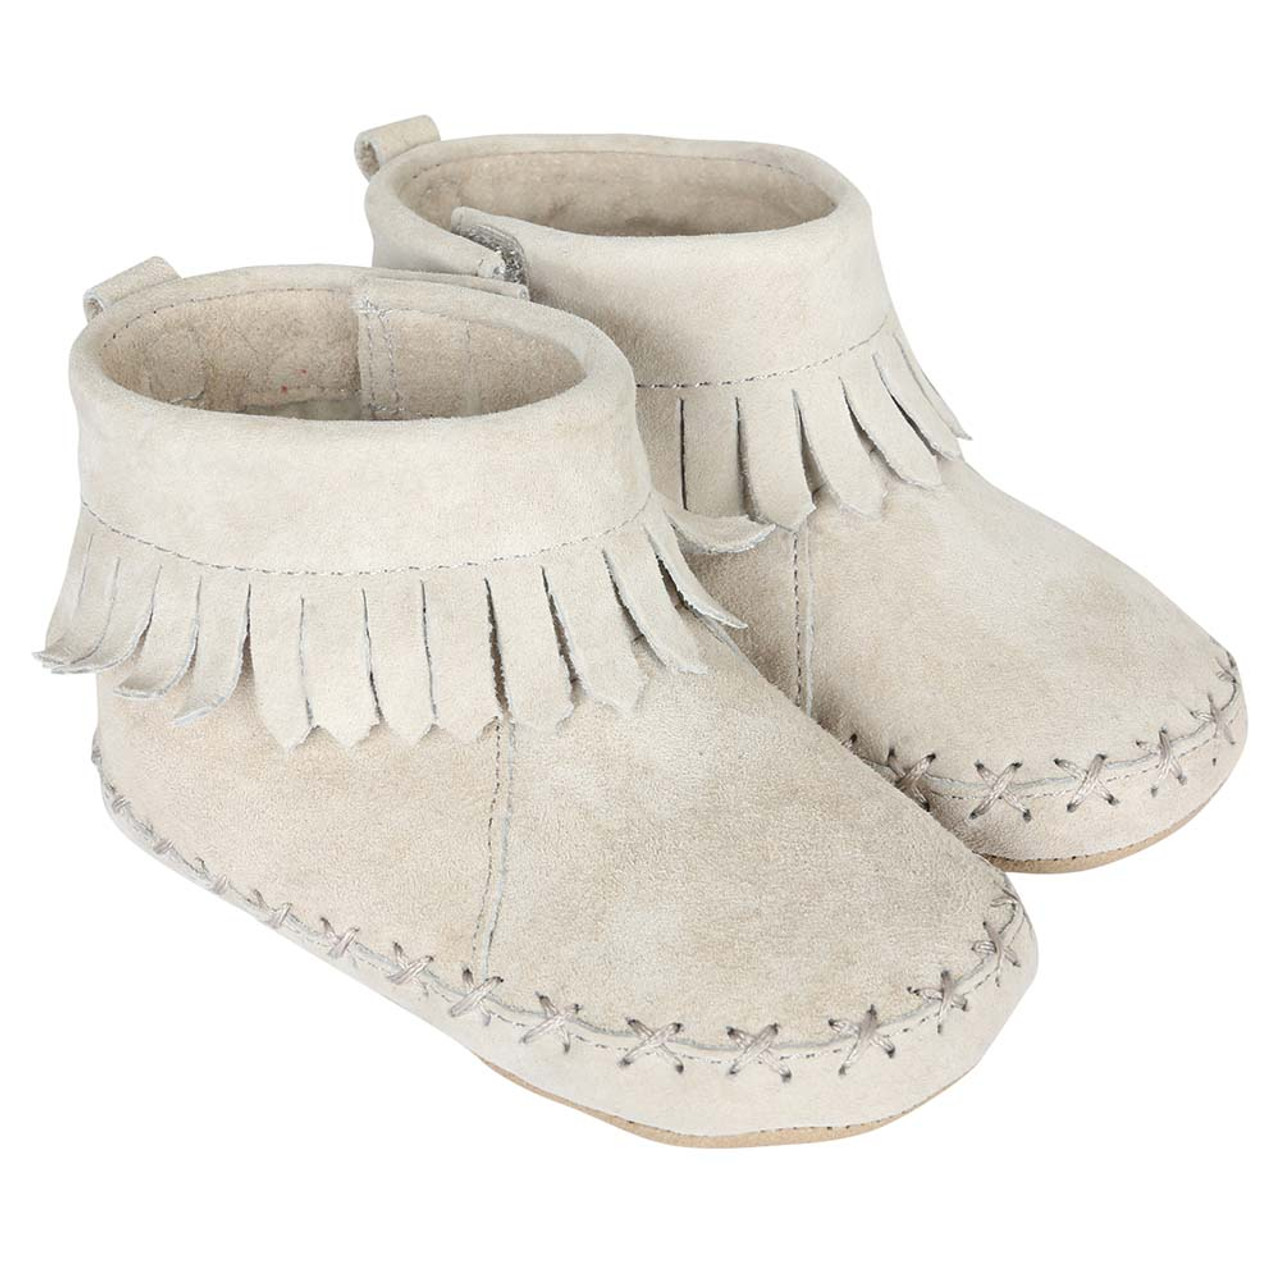 b47252812434 Baby moccasins with soft soles in grey suede.